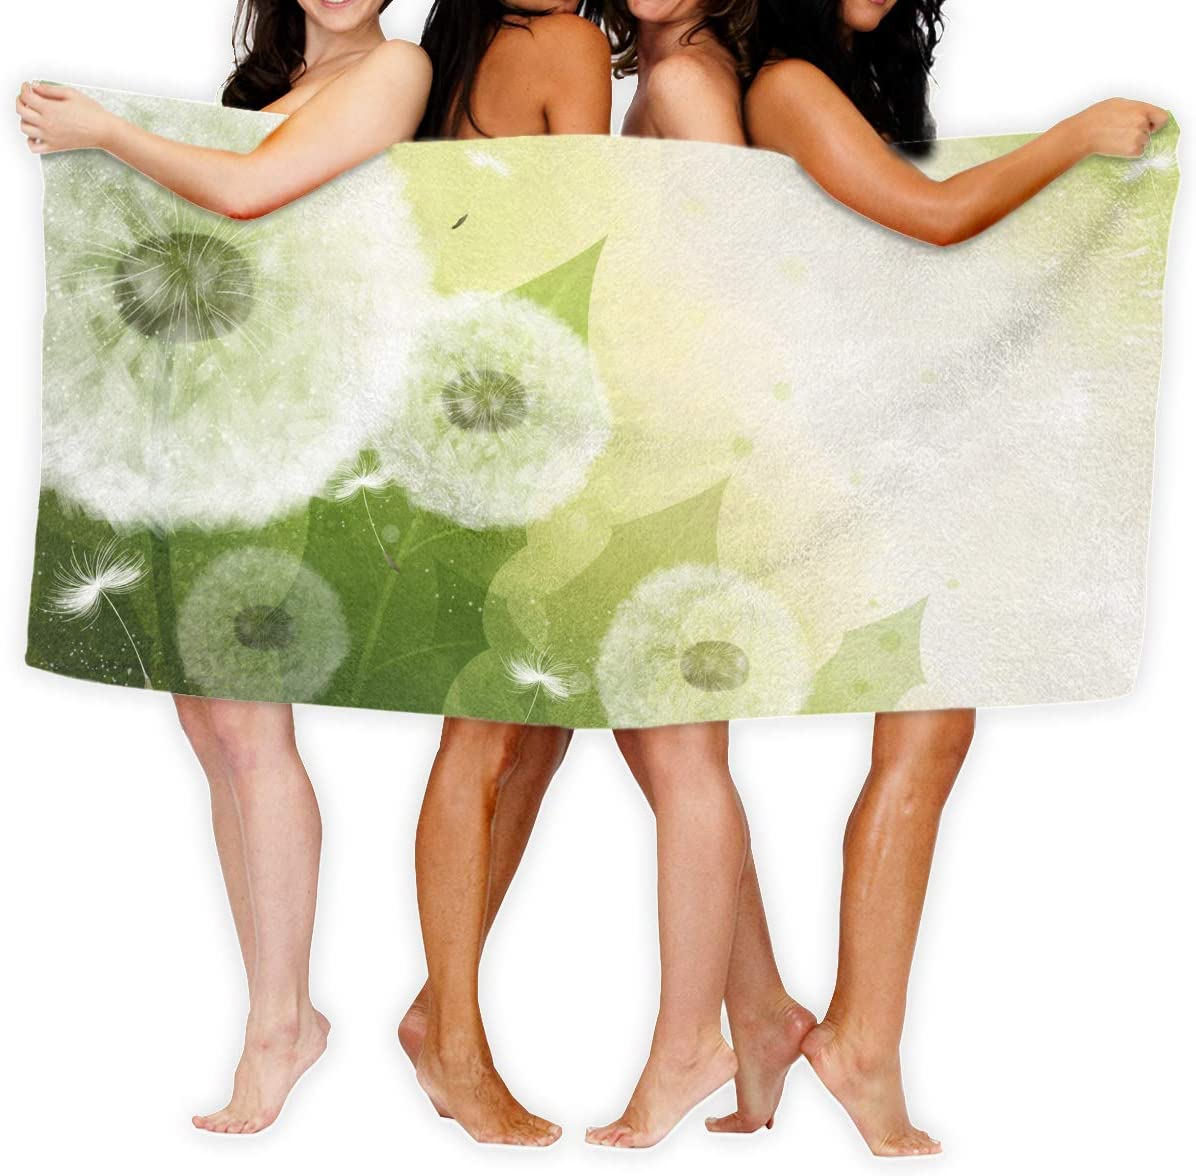 Gebrb Toallas de baño,Toalla de Playa,Manta de Playa Large Bath Towel Dandelion Art Image Lightweight High Absorbency Bath Sheet for Beach Home Bathrooms Pool Gym